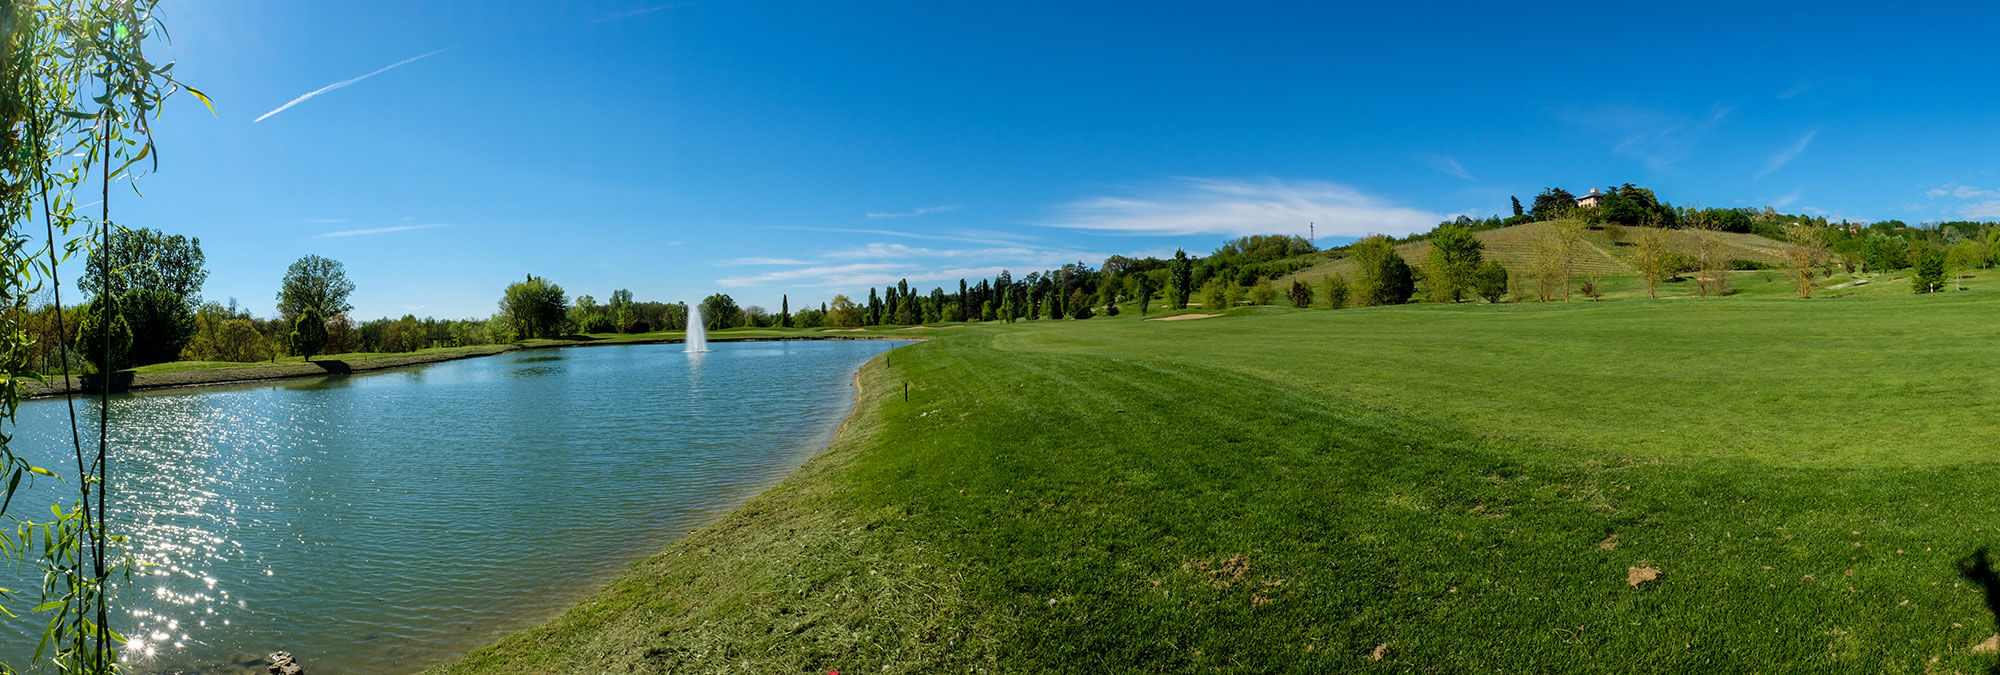 Golf Club Villa Carolina Percorso Paradiso